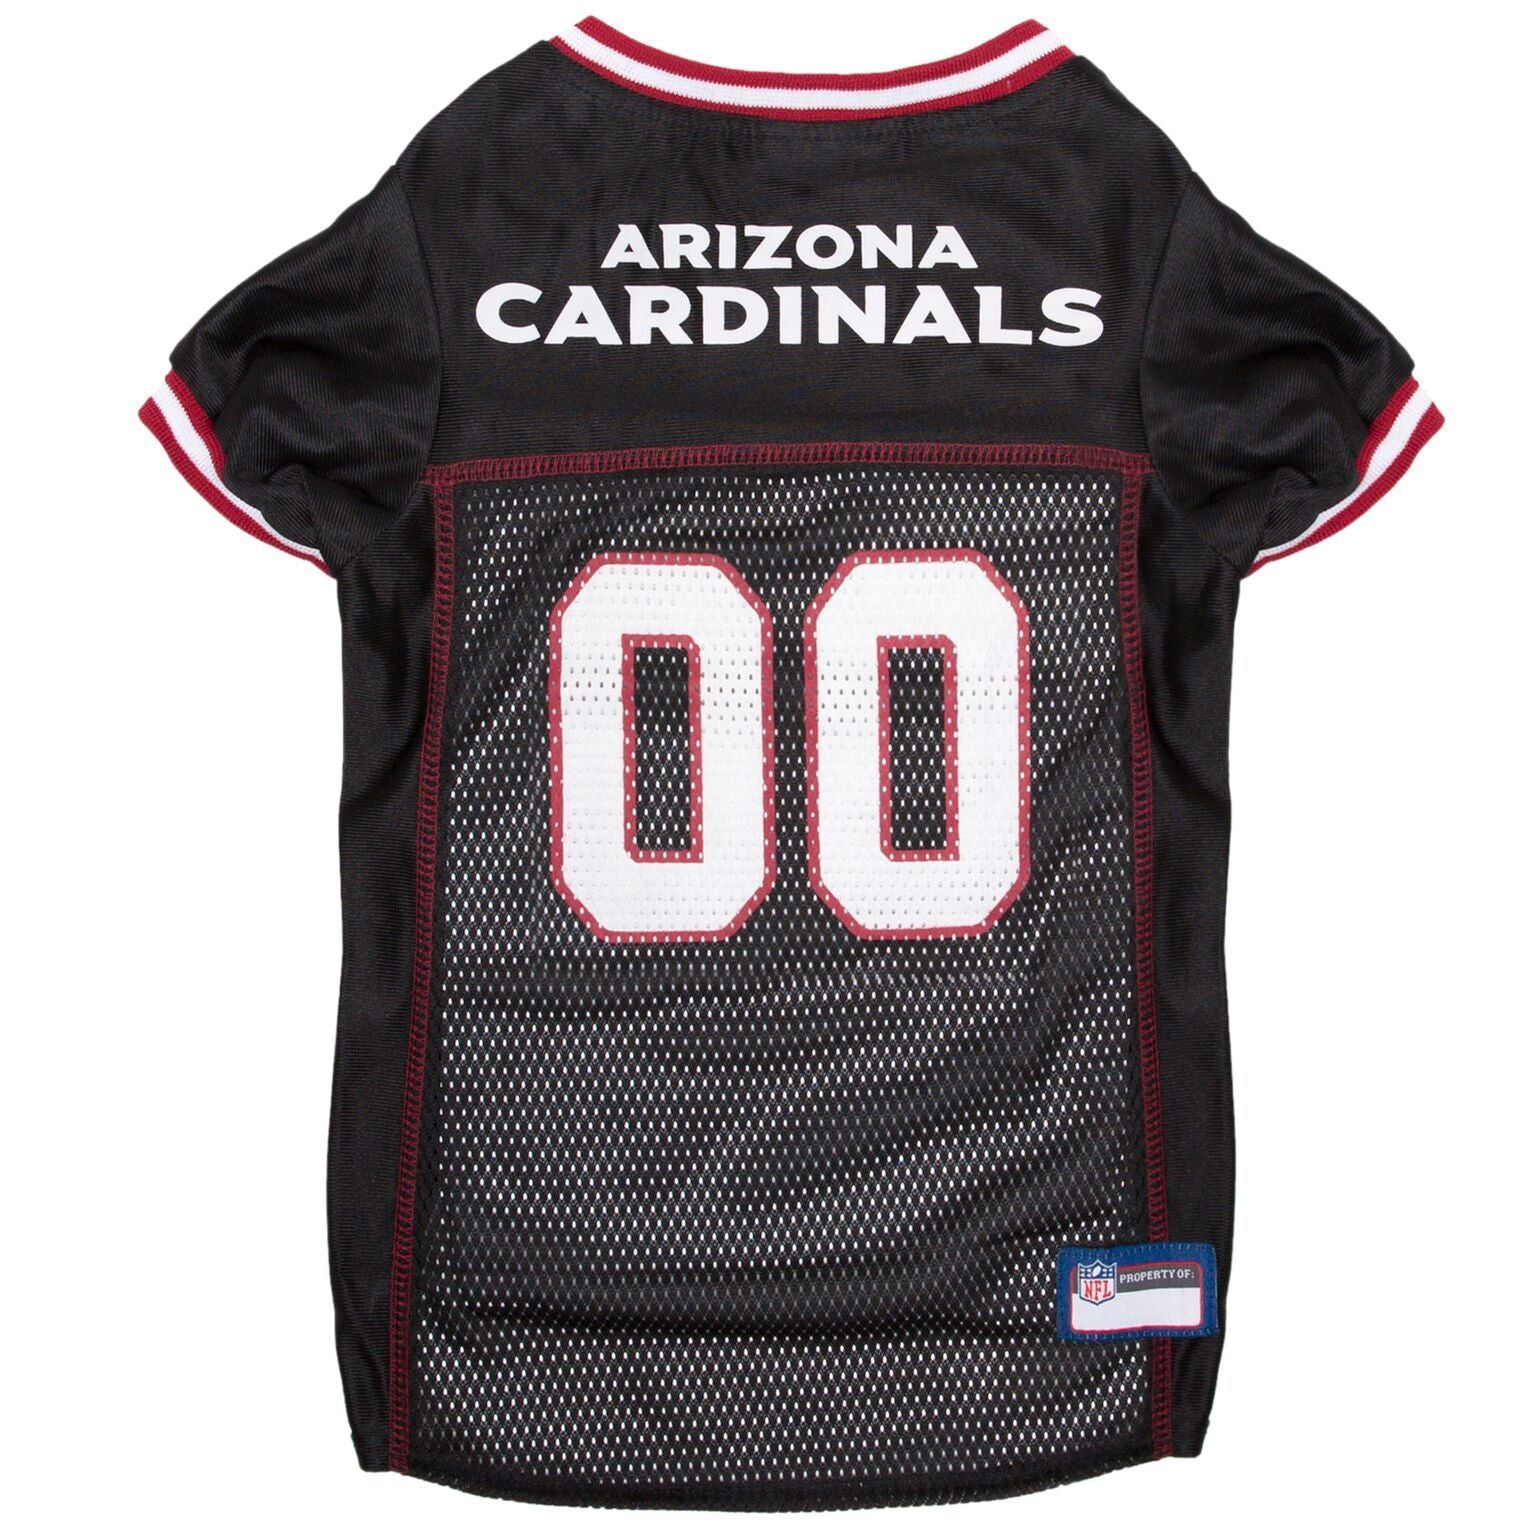 Arizona Cardinals Puppy Dog Football Jersey - Jersey Champs